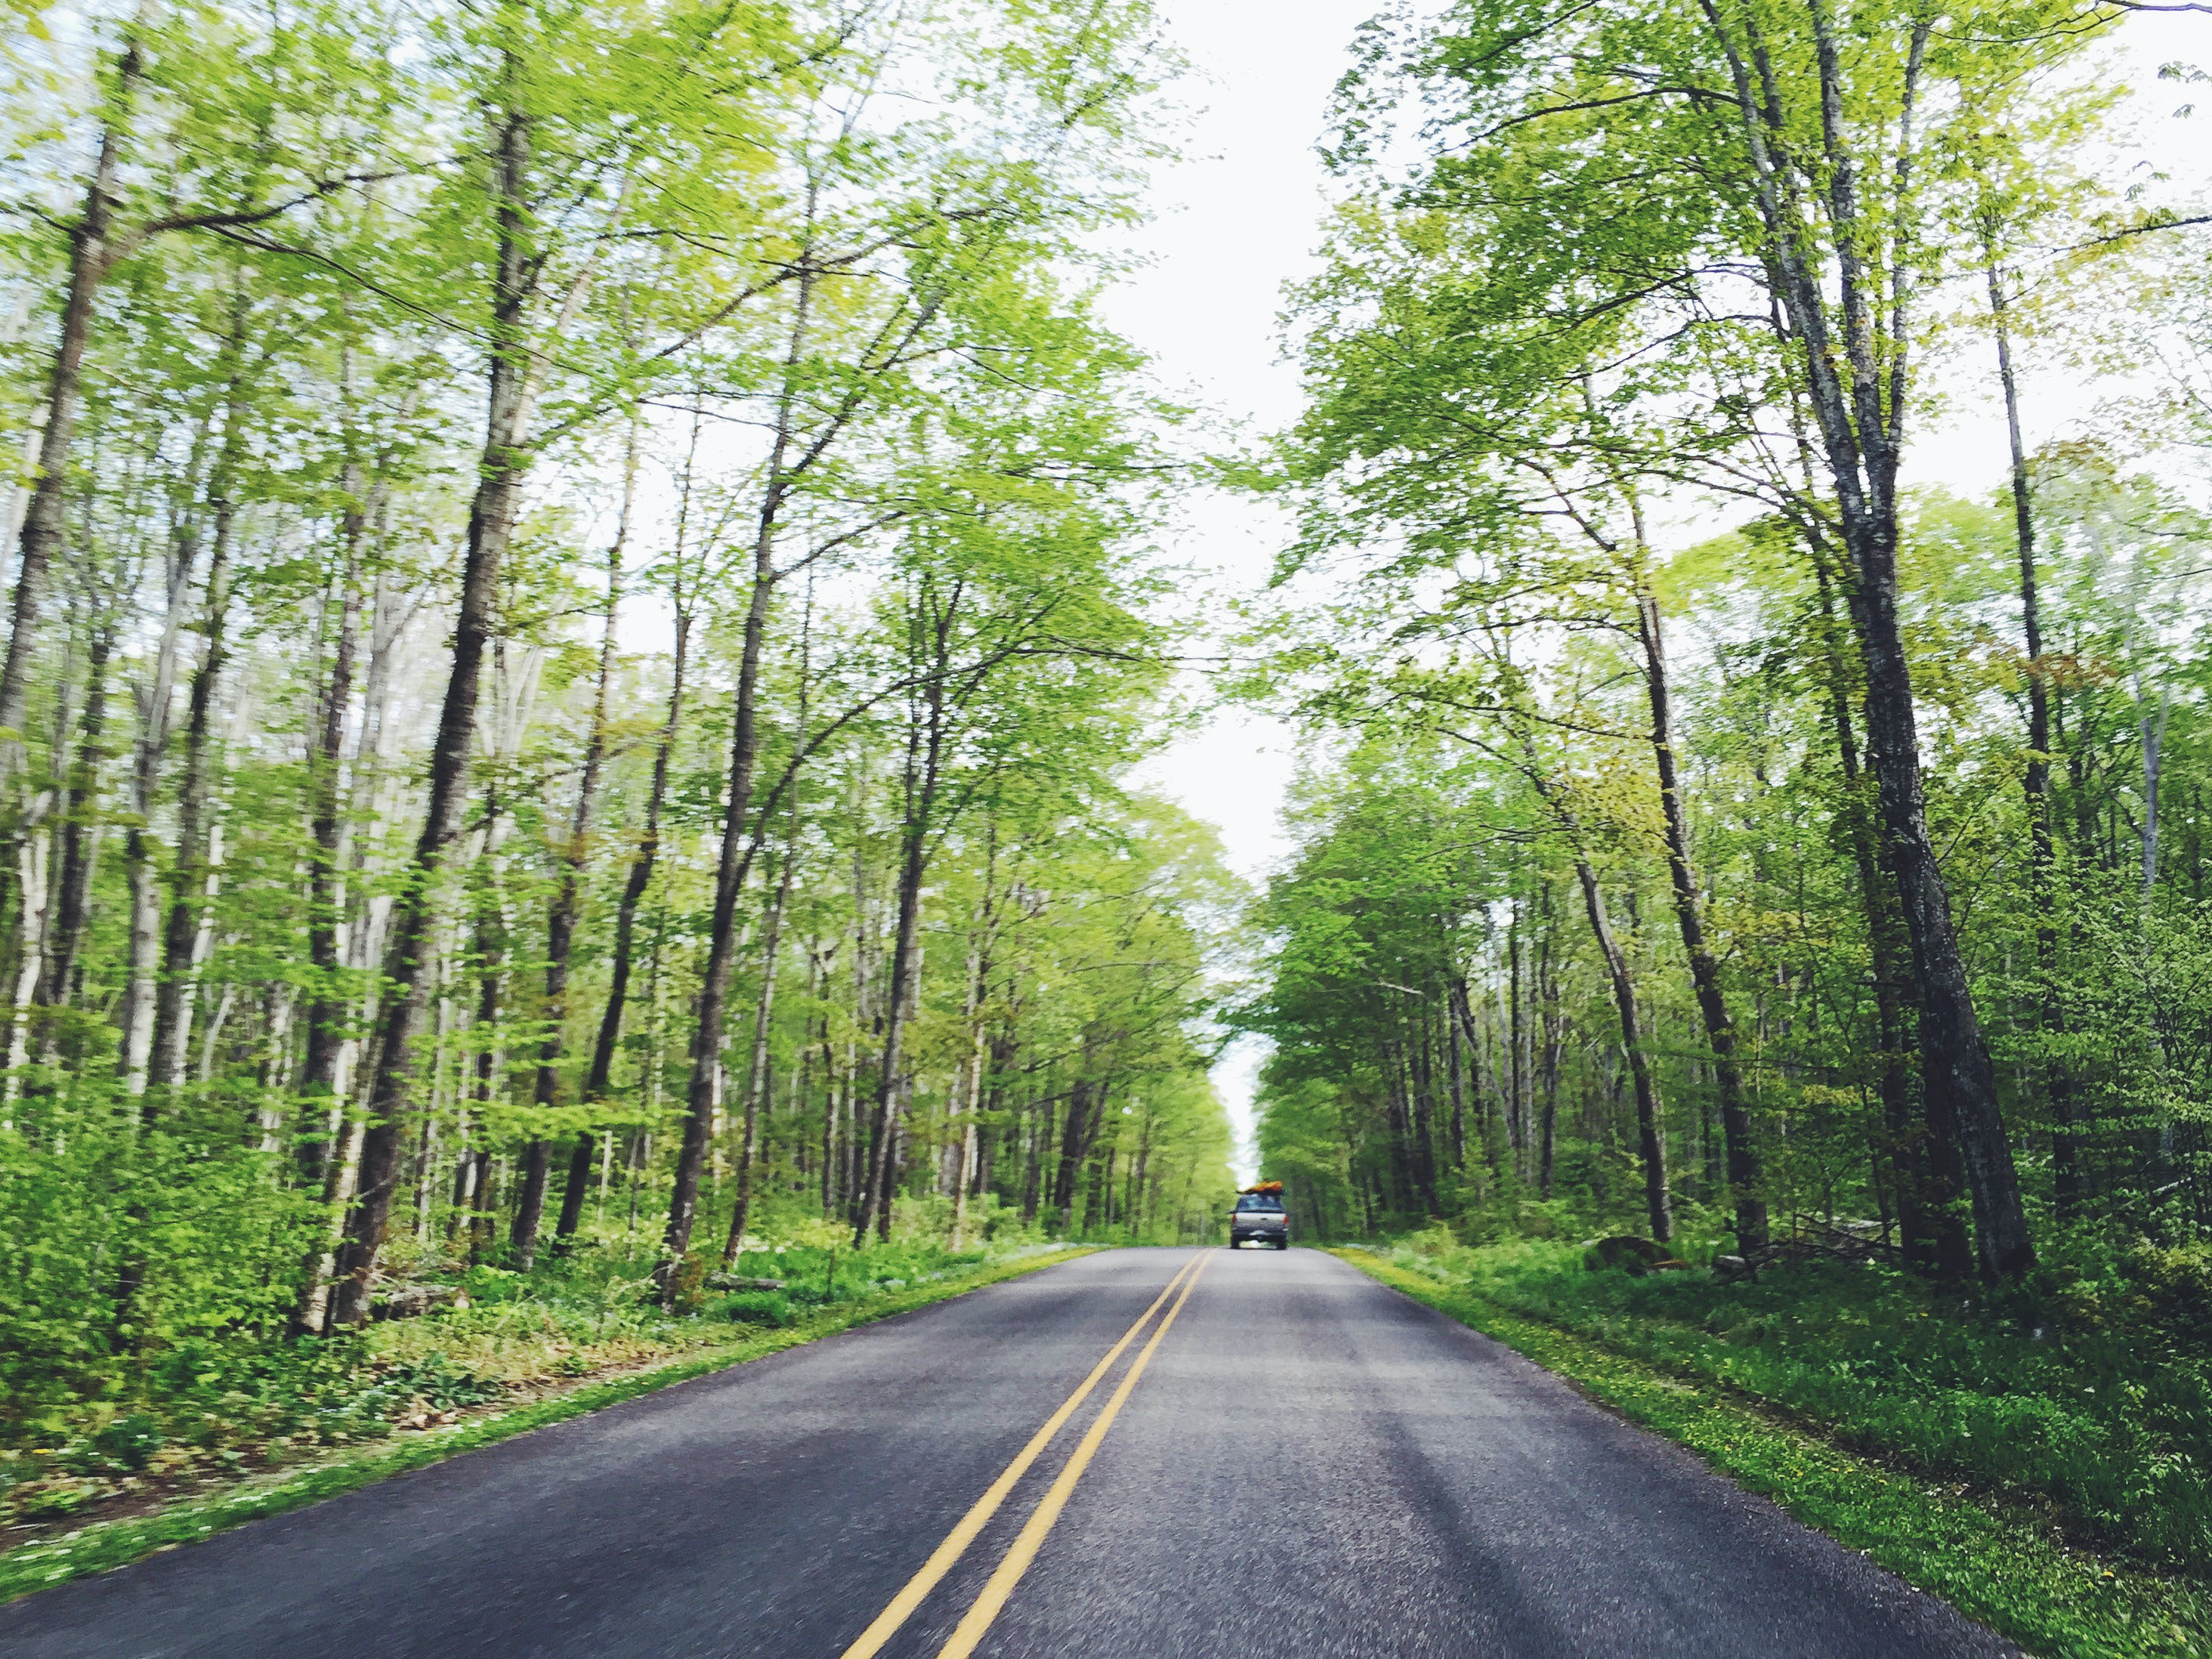 Free stock photo of road, street, forest, straight